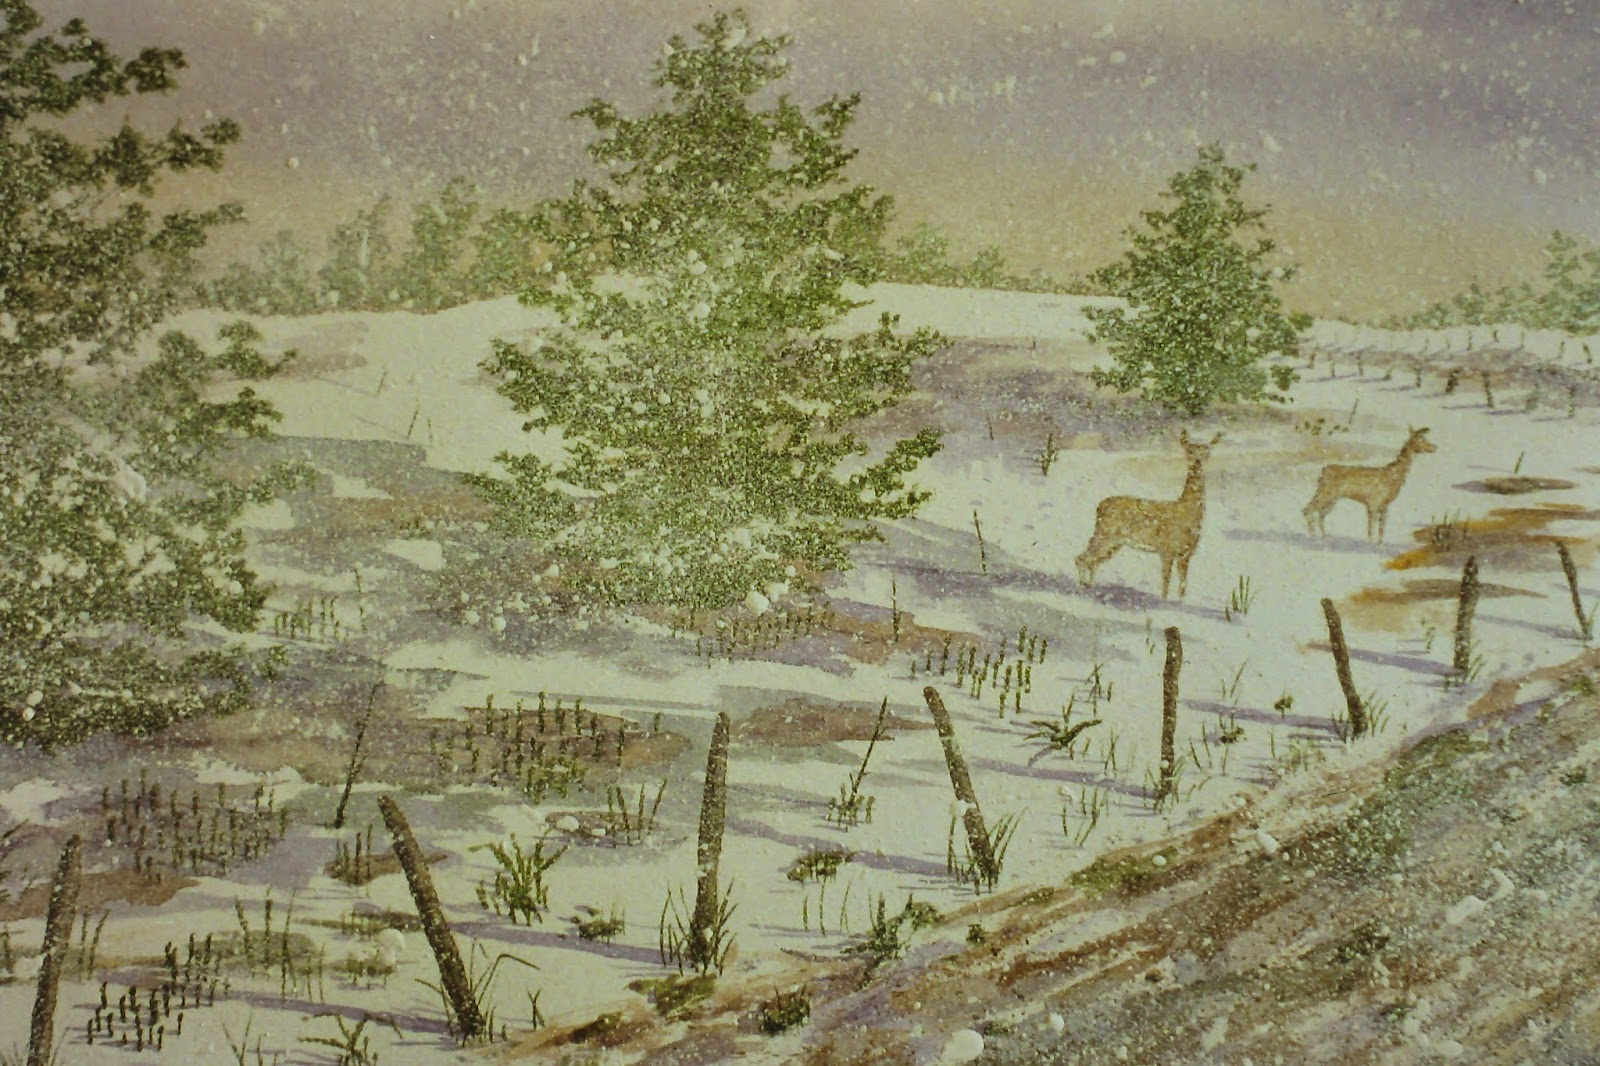 Two Deer, near Little Keithock Farmhouse, Brechin Road, Angus, Scotland  28x40 inches. Watercolor on paper, c. 1991.  In a private collection in Brechin, Scotland by Lenny Campello